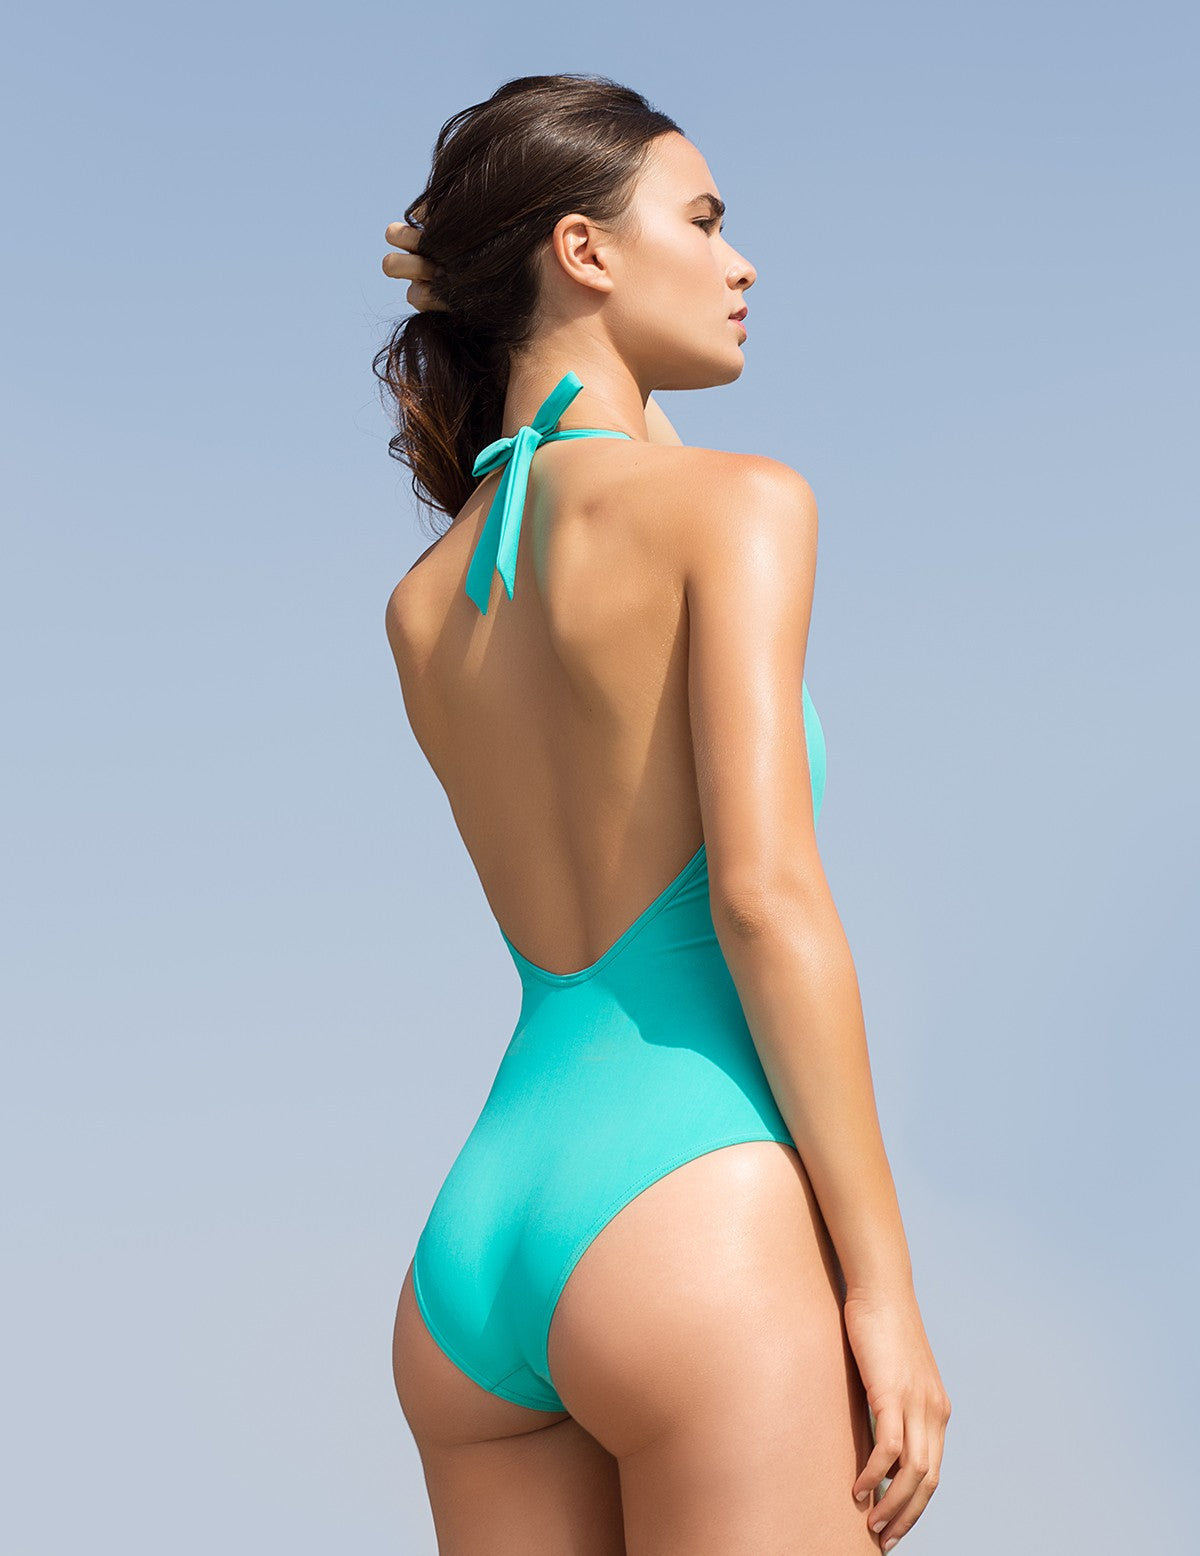 The Aquamarine Backless Swimsuit Statice - Swimsuit Statice